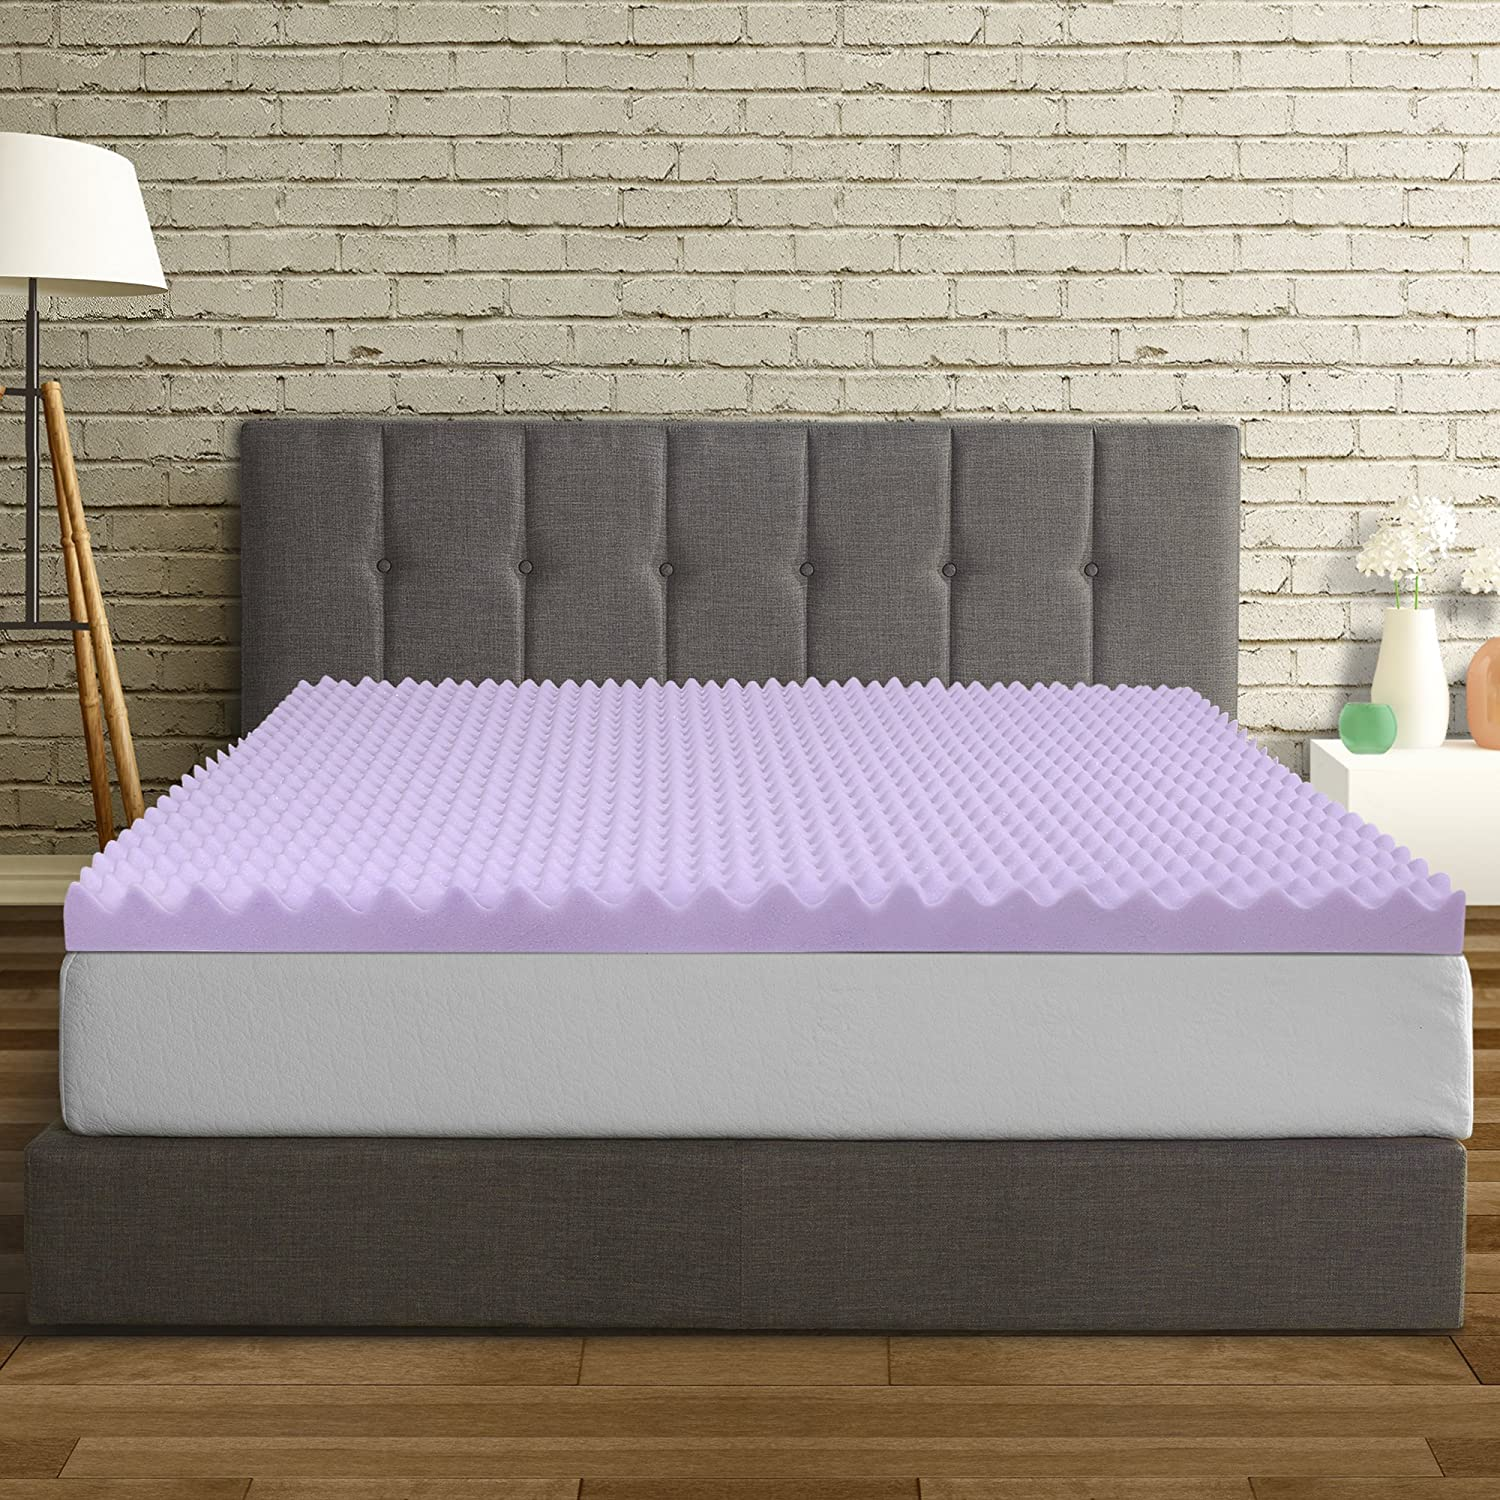 Best Price Mattress King Mattress Topper - 3 Inch Egg Crate Memory Foam Bed Topper with Lavender Cooling Mattress Pad, King Size